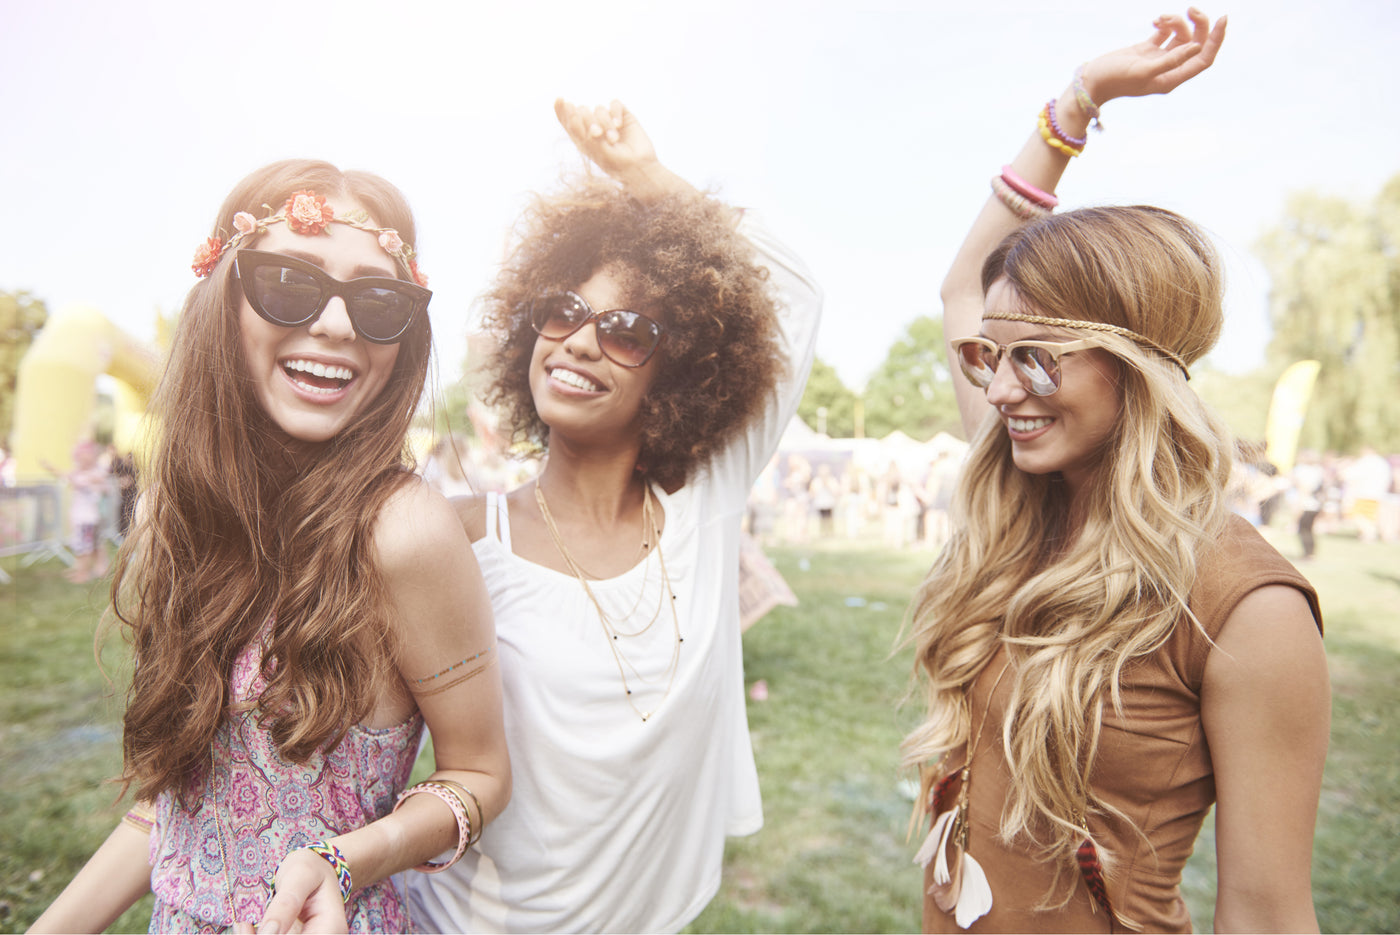 FESTIVAL READY: BEAUTY SURVIVAL GUIDE